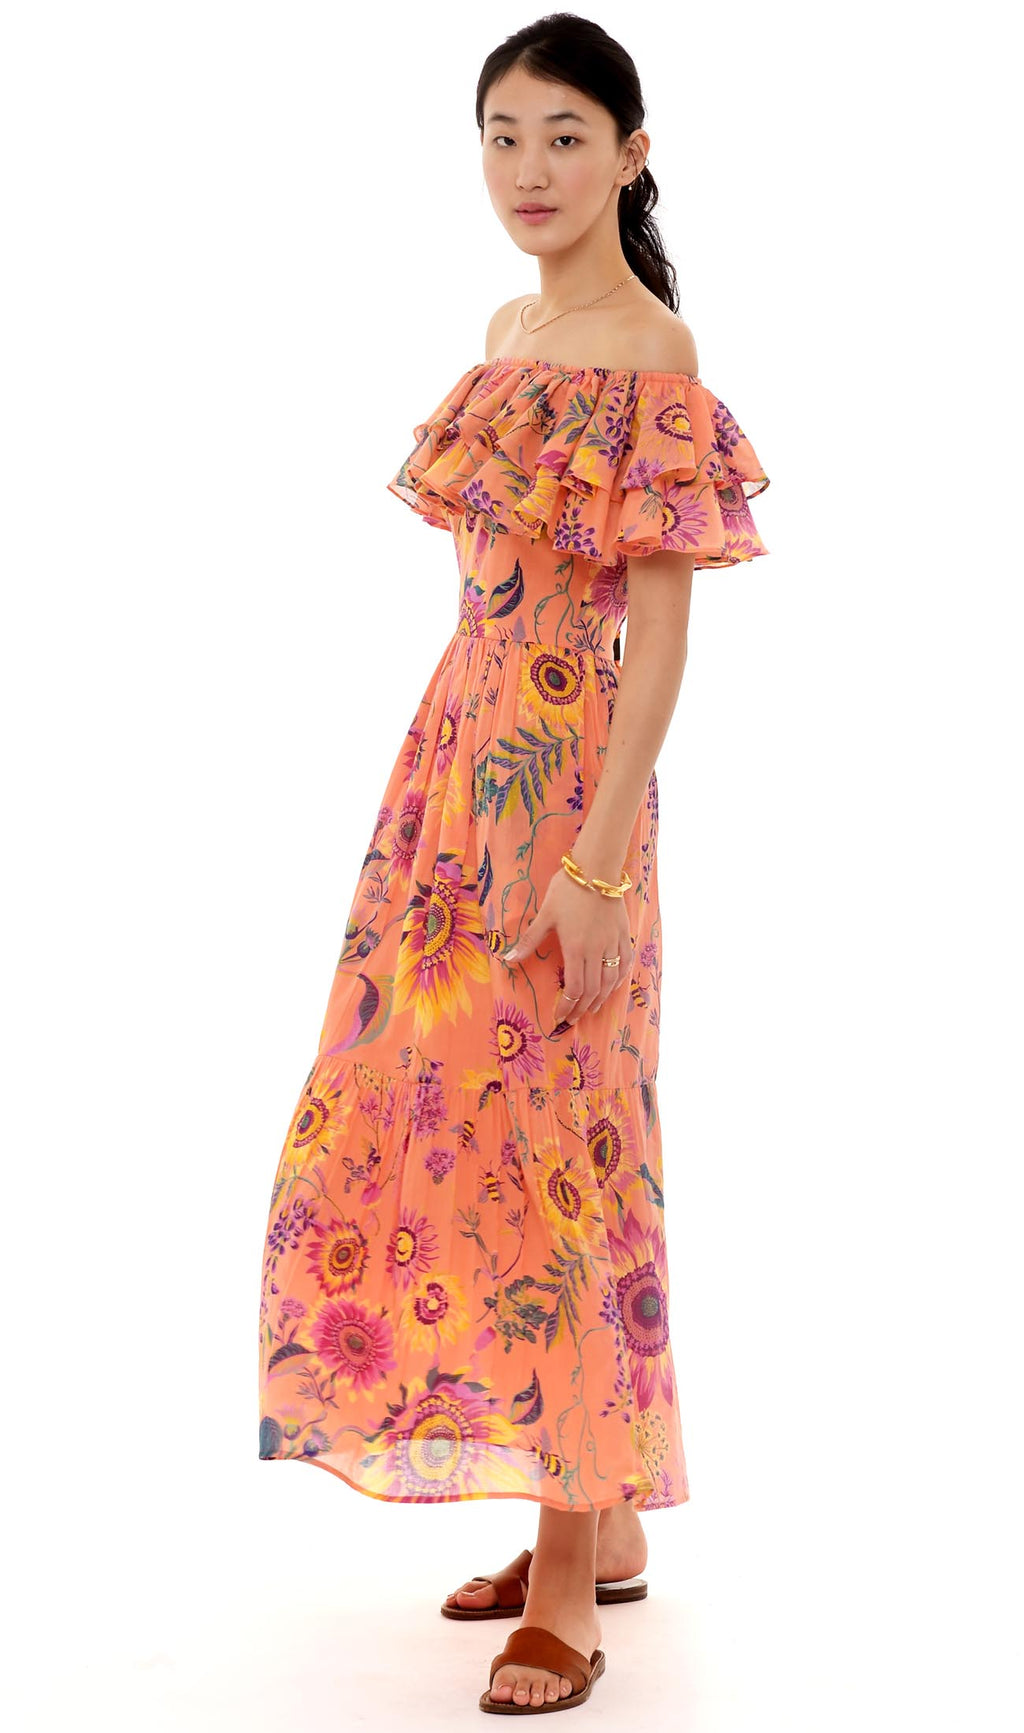 Pricilla Dress, Mid-Summer Bumble Living Coral, 100% Organic Cotton Voile